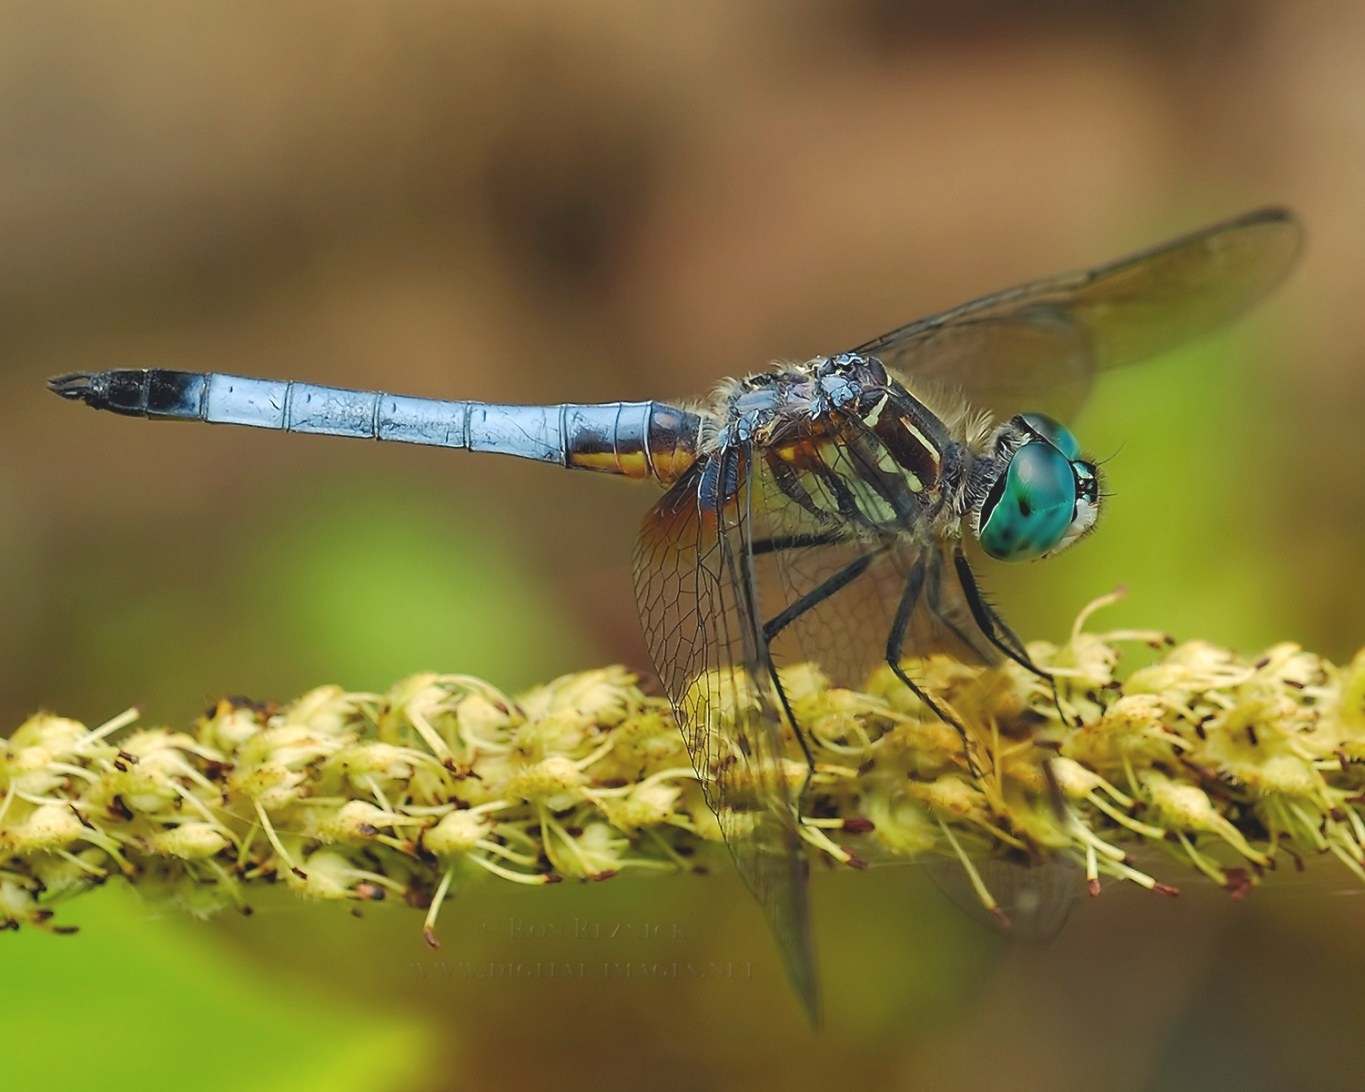 Bees, Flies And Dragonflies within What Do Dragonflies Eat